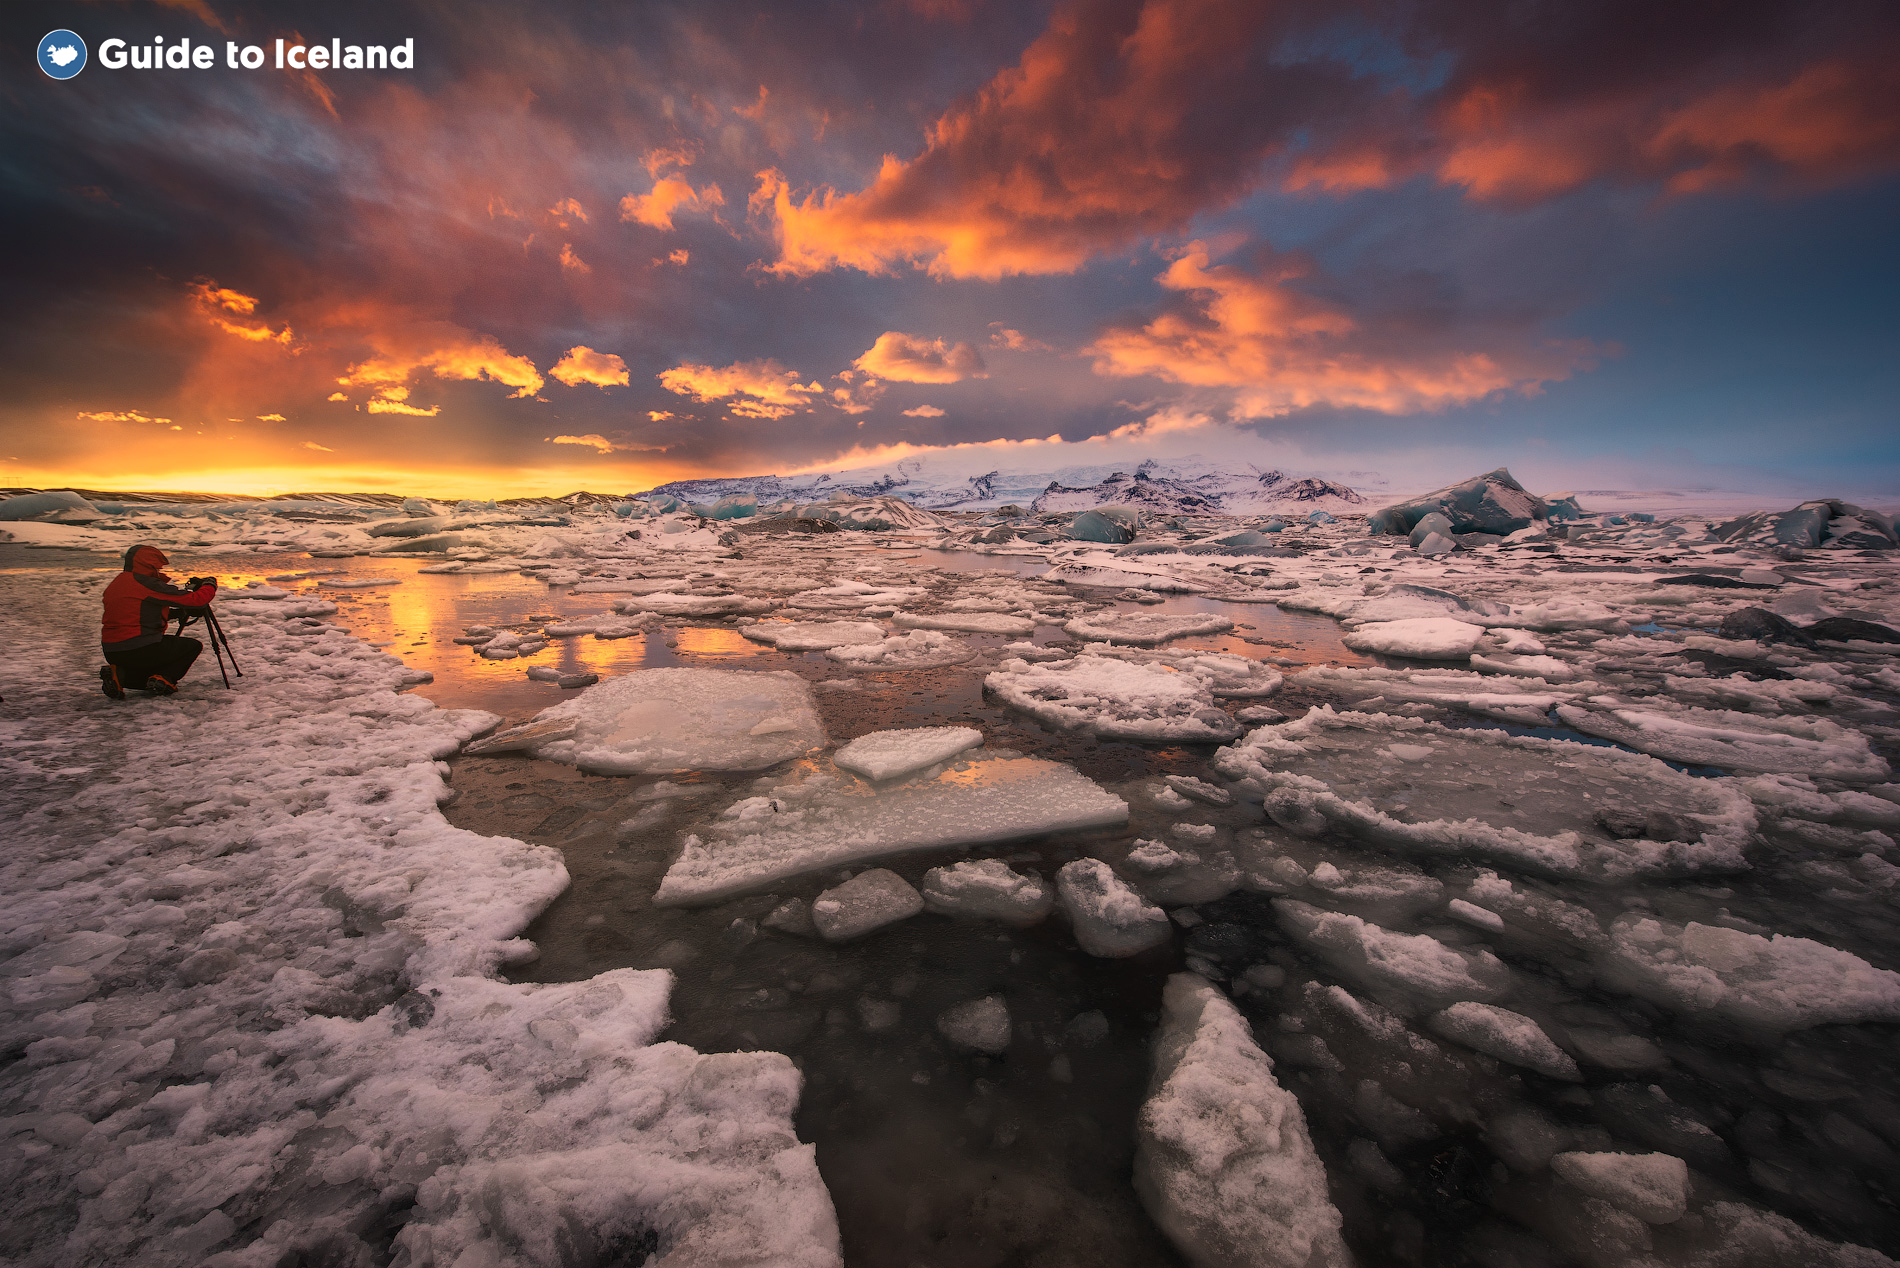 The black sand beach that sits beside the Jökulsárlón glacier lagoon is called the Diamond Beach due to the glittering icebergs that wash upon it.